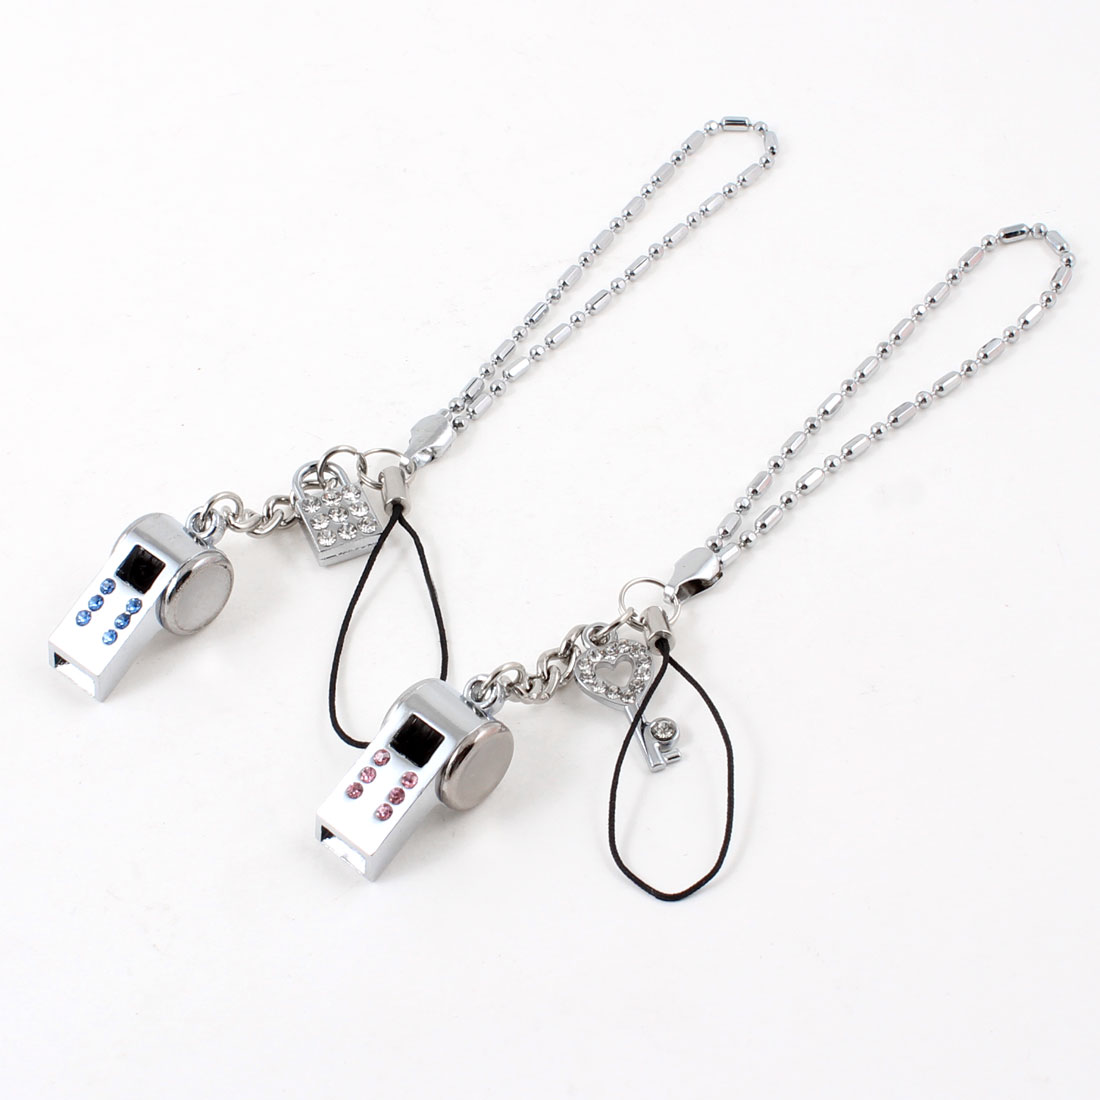 Lovers Whistle Key Lock Pendant Alloy Cell Phone Strap Pair Sliver Tone